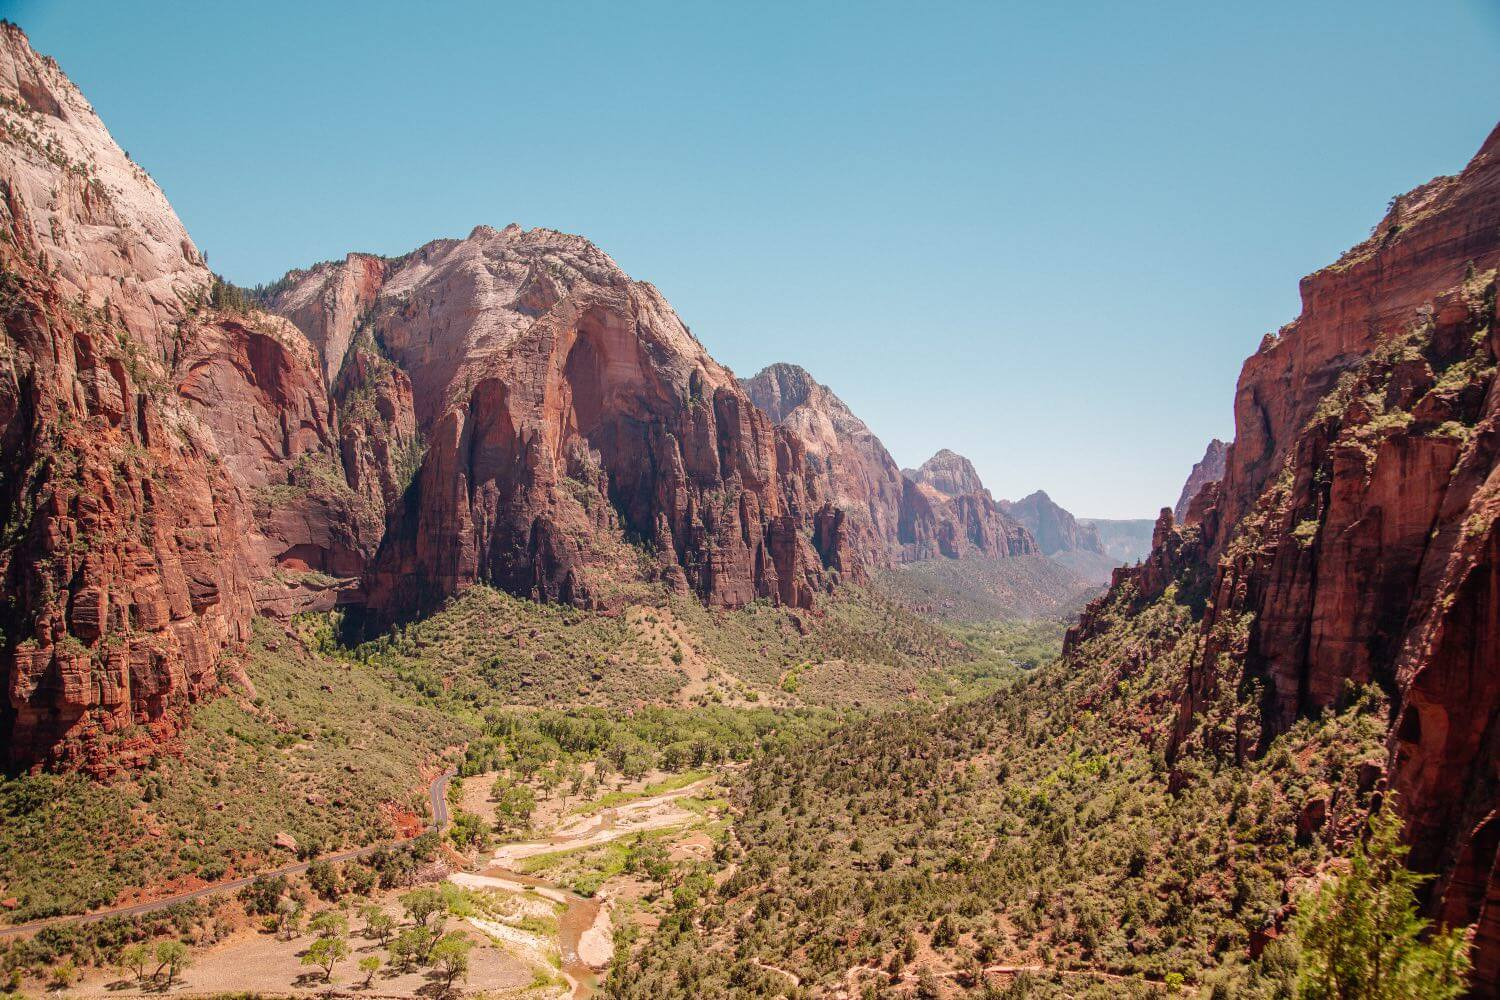 Lookout of Zion National Park on Angels Landing Hike